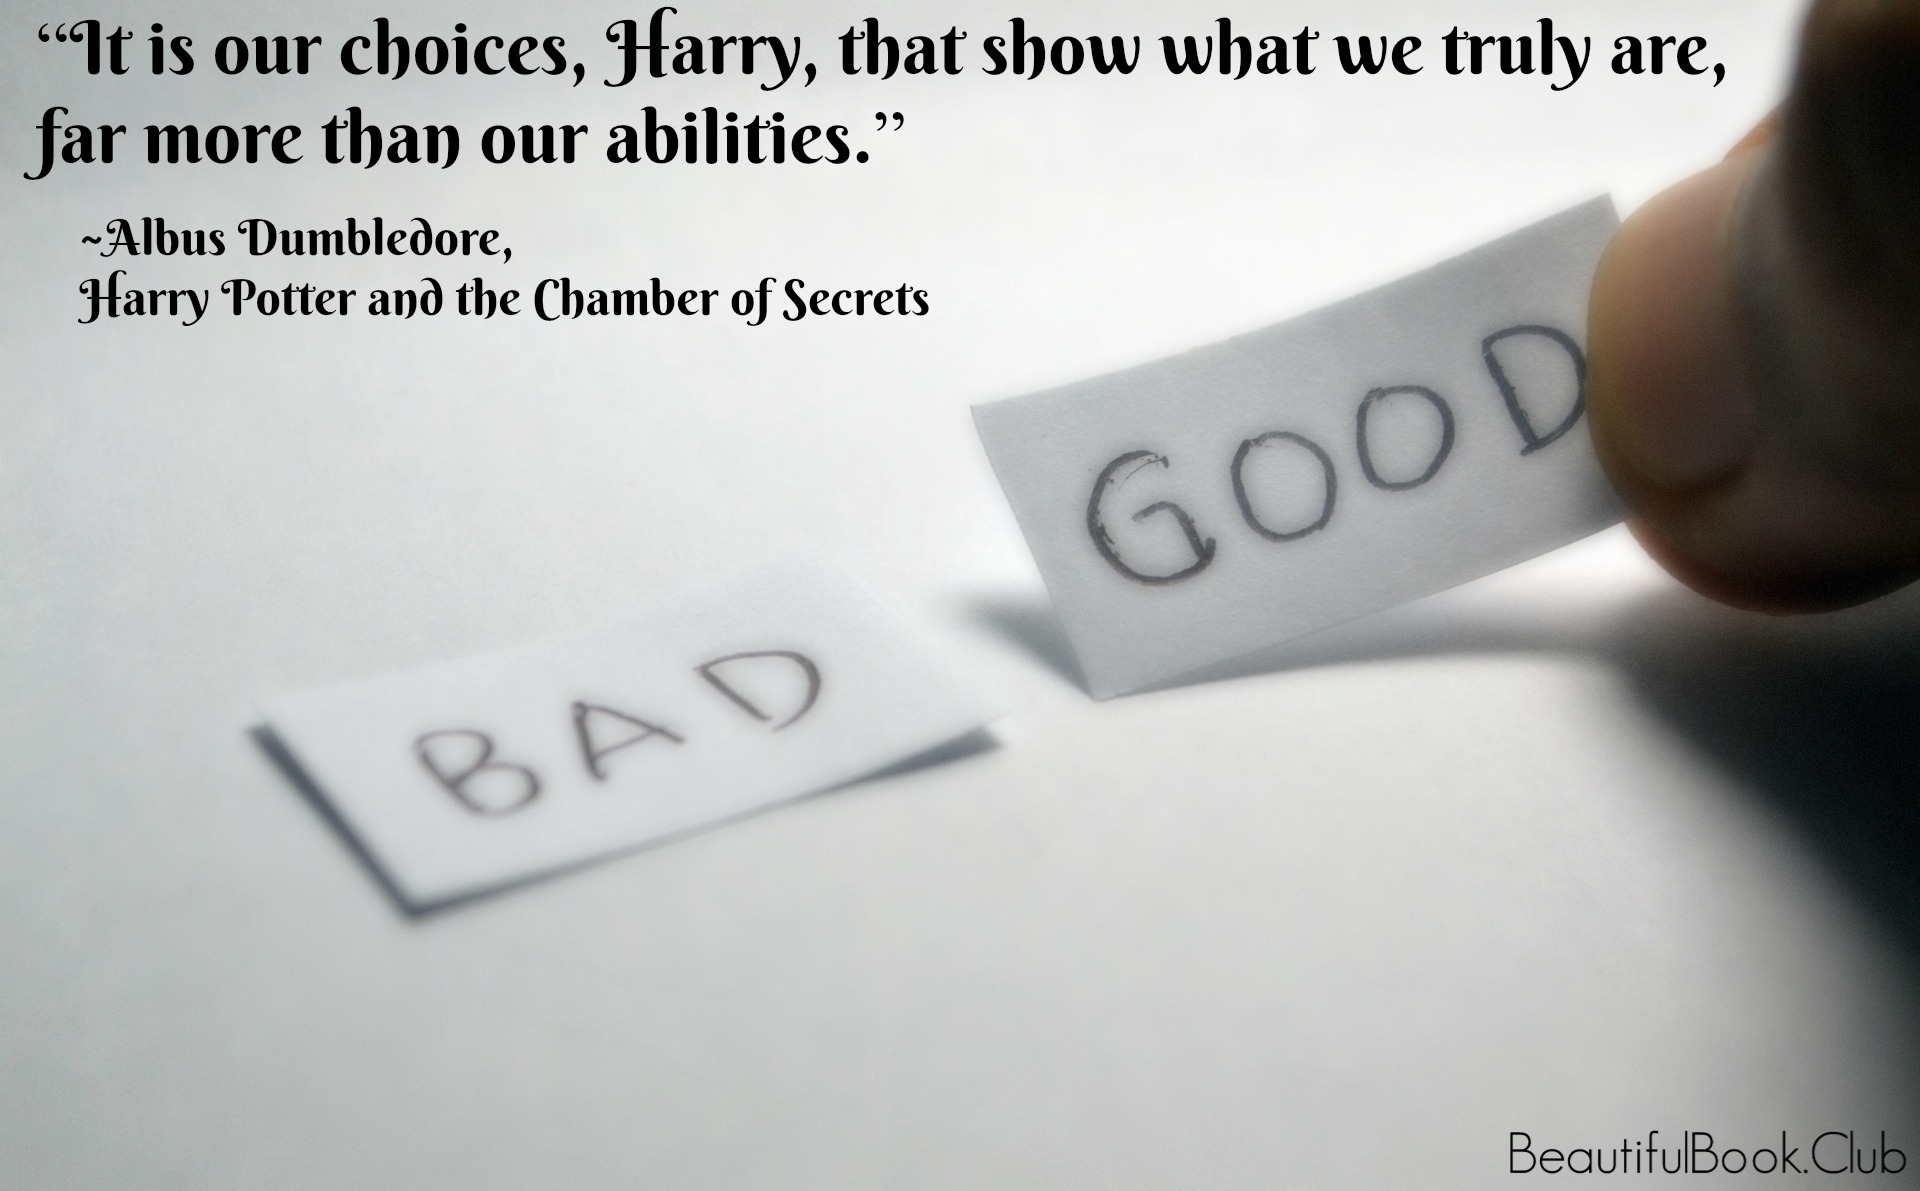 It is our choices, Harry, that show what we truly are, far more than our abilities. -Albus Dumbledore, Harry Potter and the Chamber of Secrets